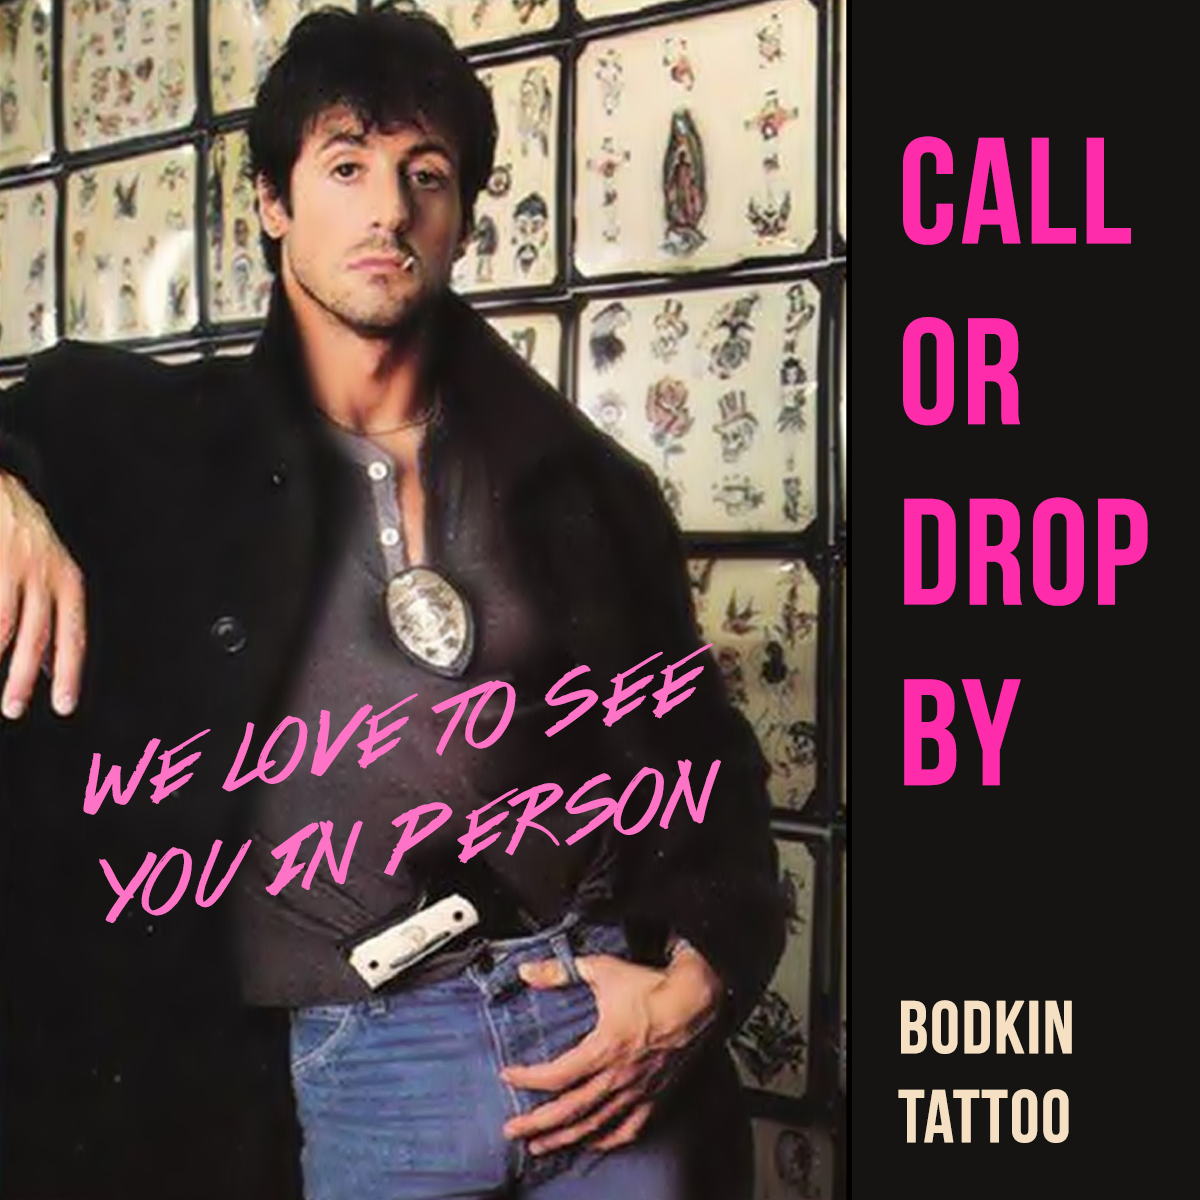 Stallone_CallDropBy_oct16.png